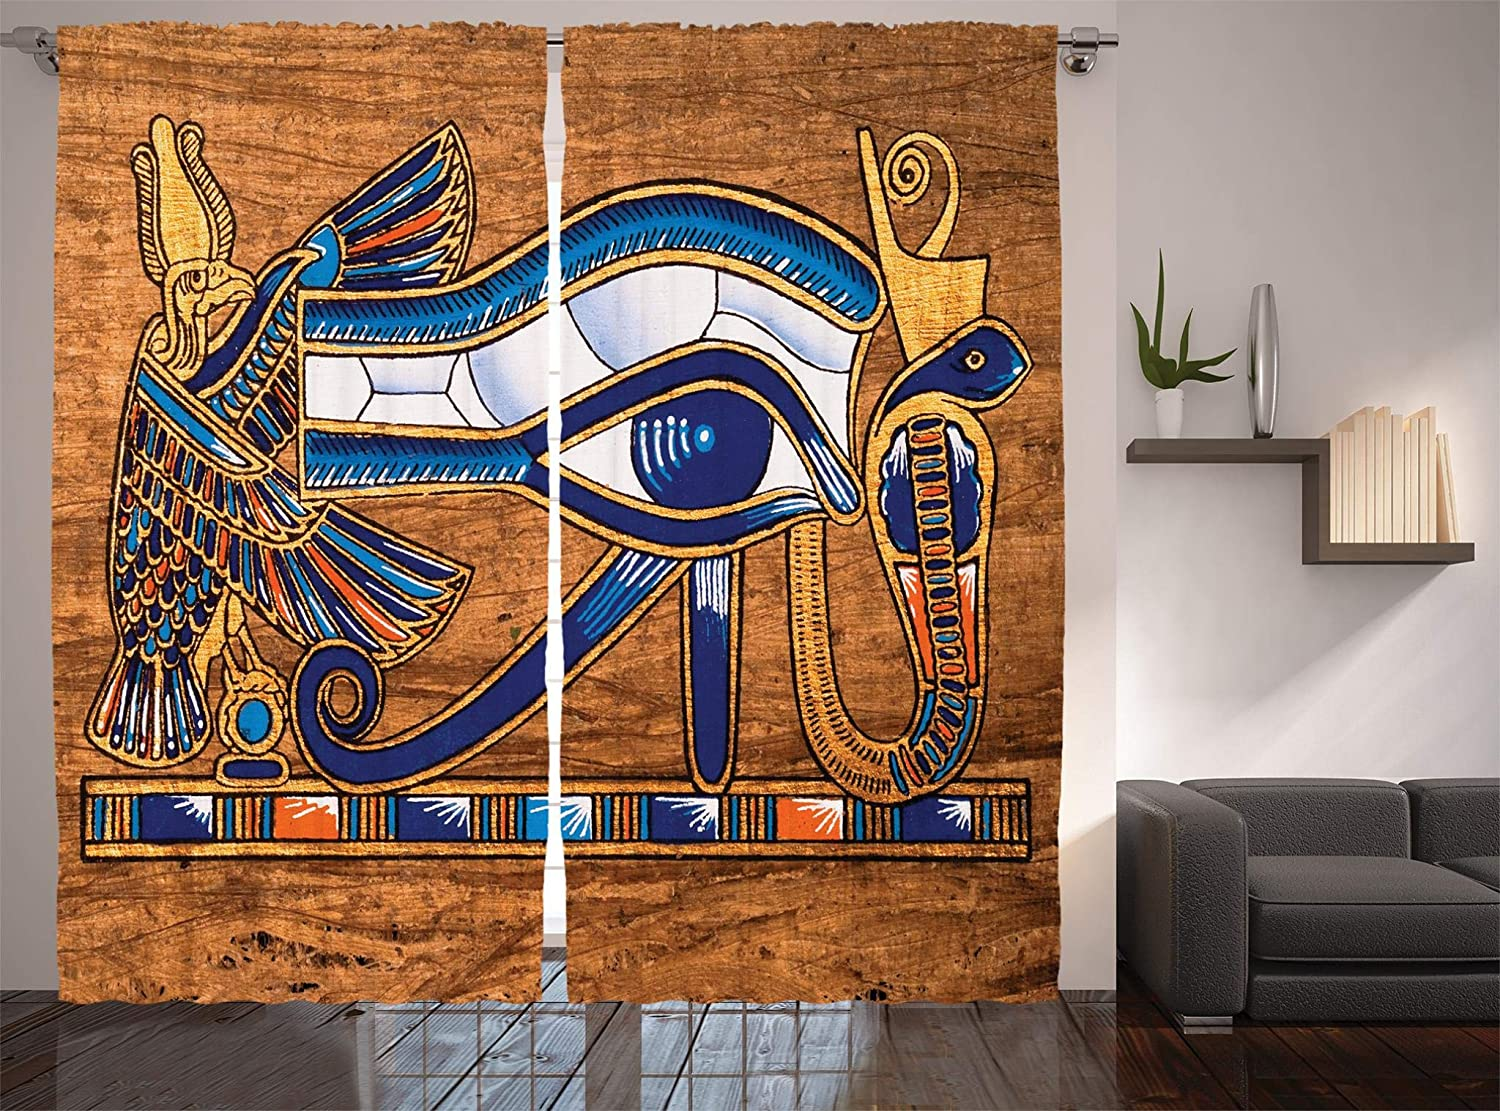 Ethnic Bedroom Drapes 2 Panel 3D Window Curtains Egypt Background Ancient Decor